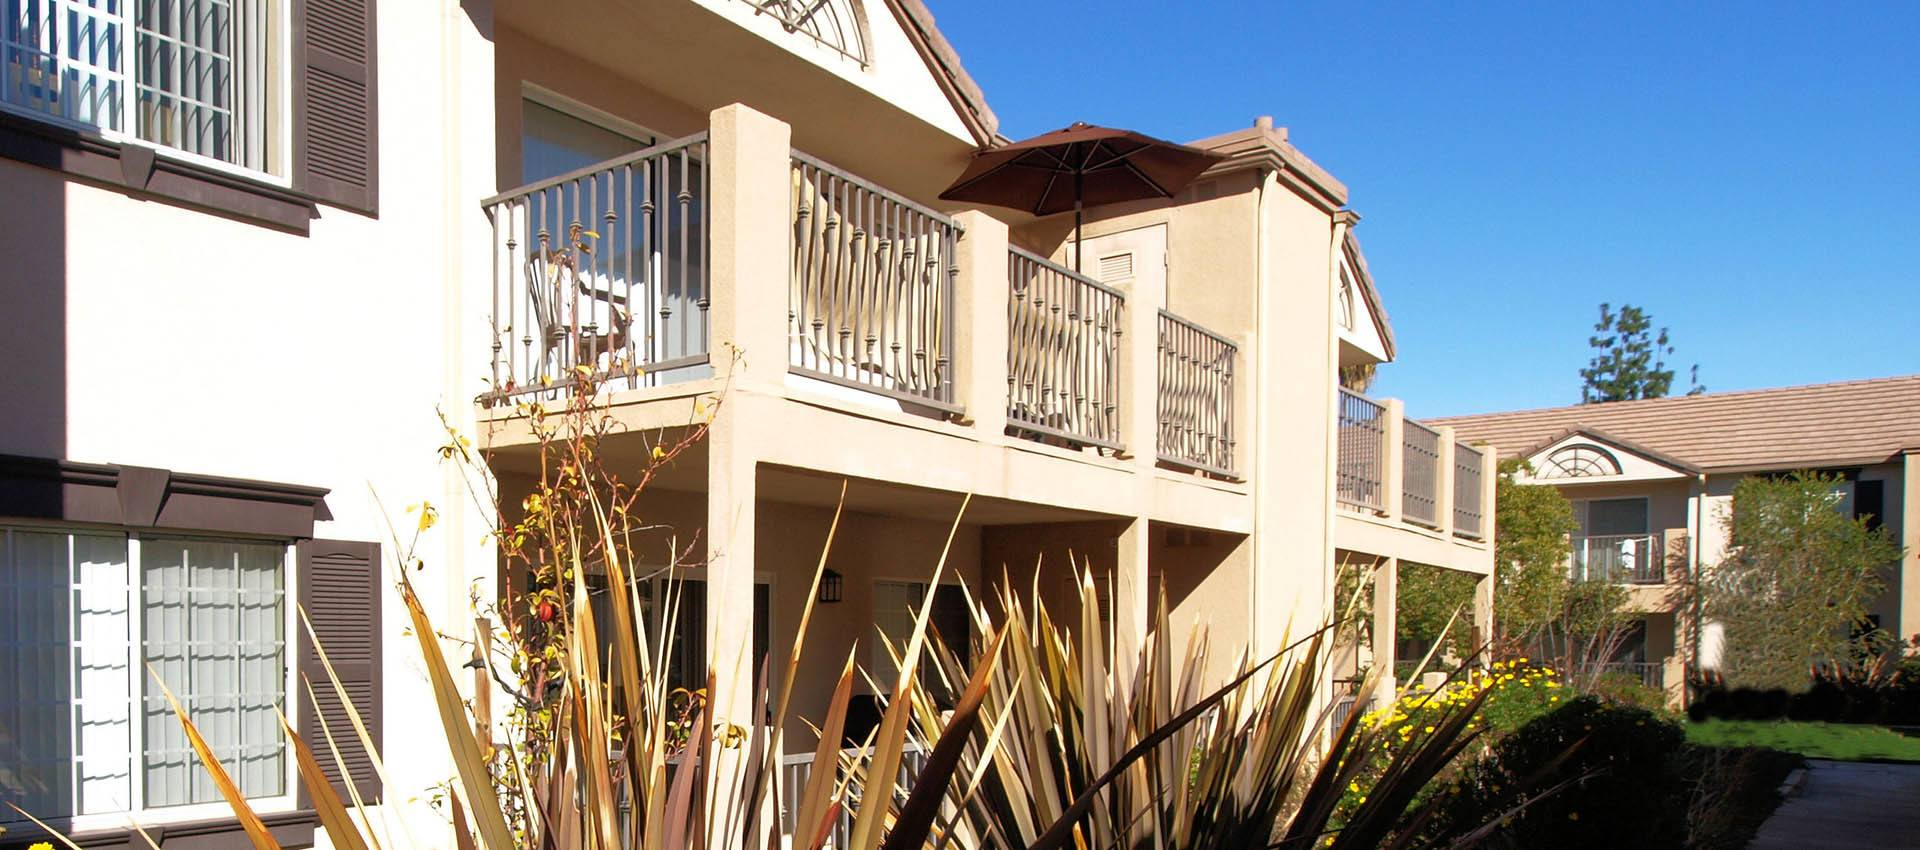 Building Exterior With Balconies at Cypress Villas Apartment Homes in Redlands, CA